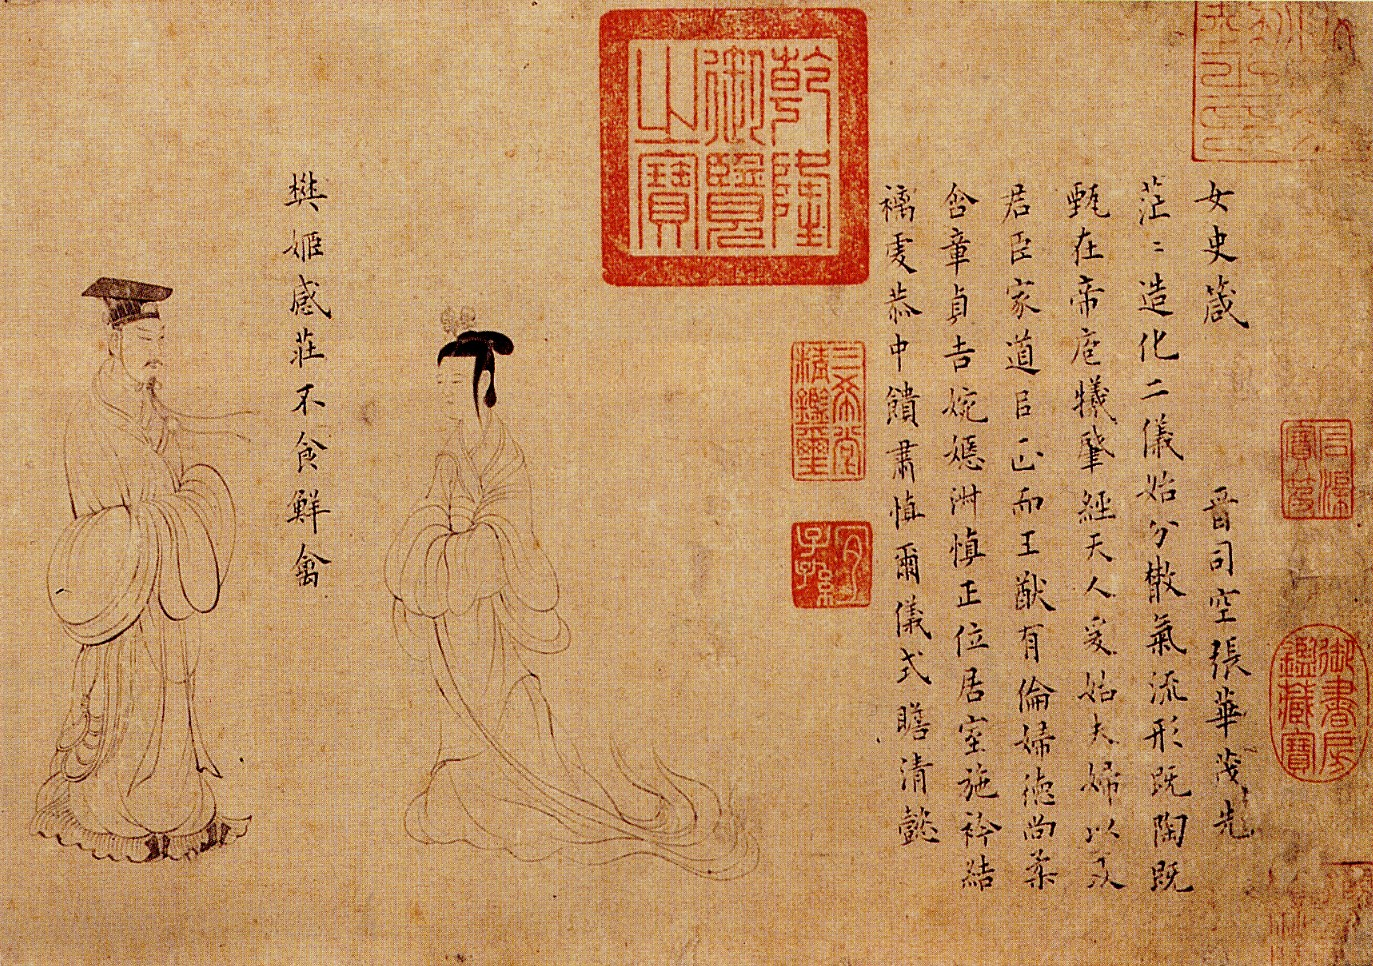 Scene 1 of The Admonitions of the Instructress to the Court Ladies (Song Dynasty version)